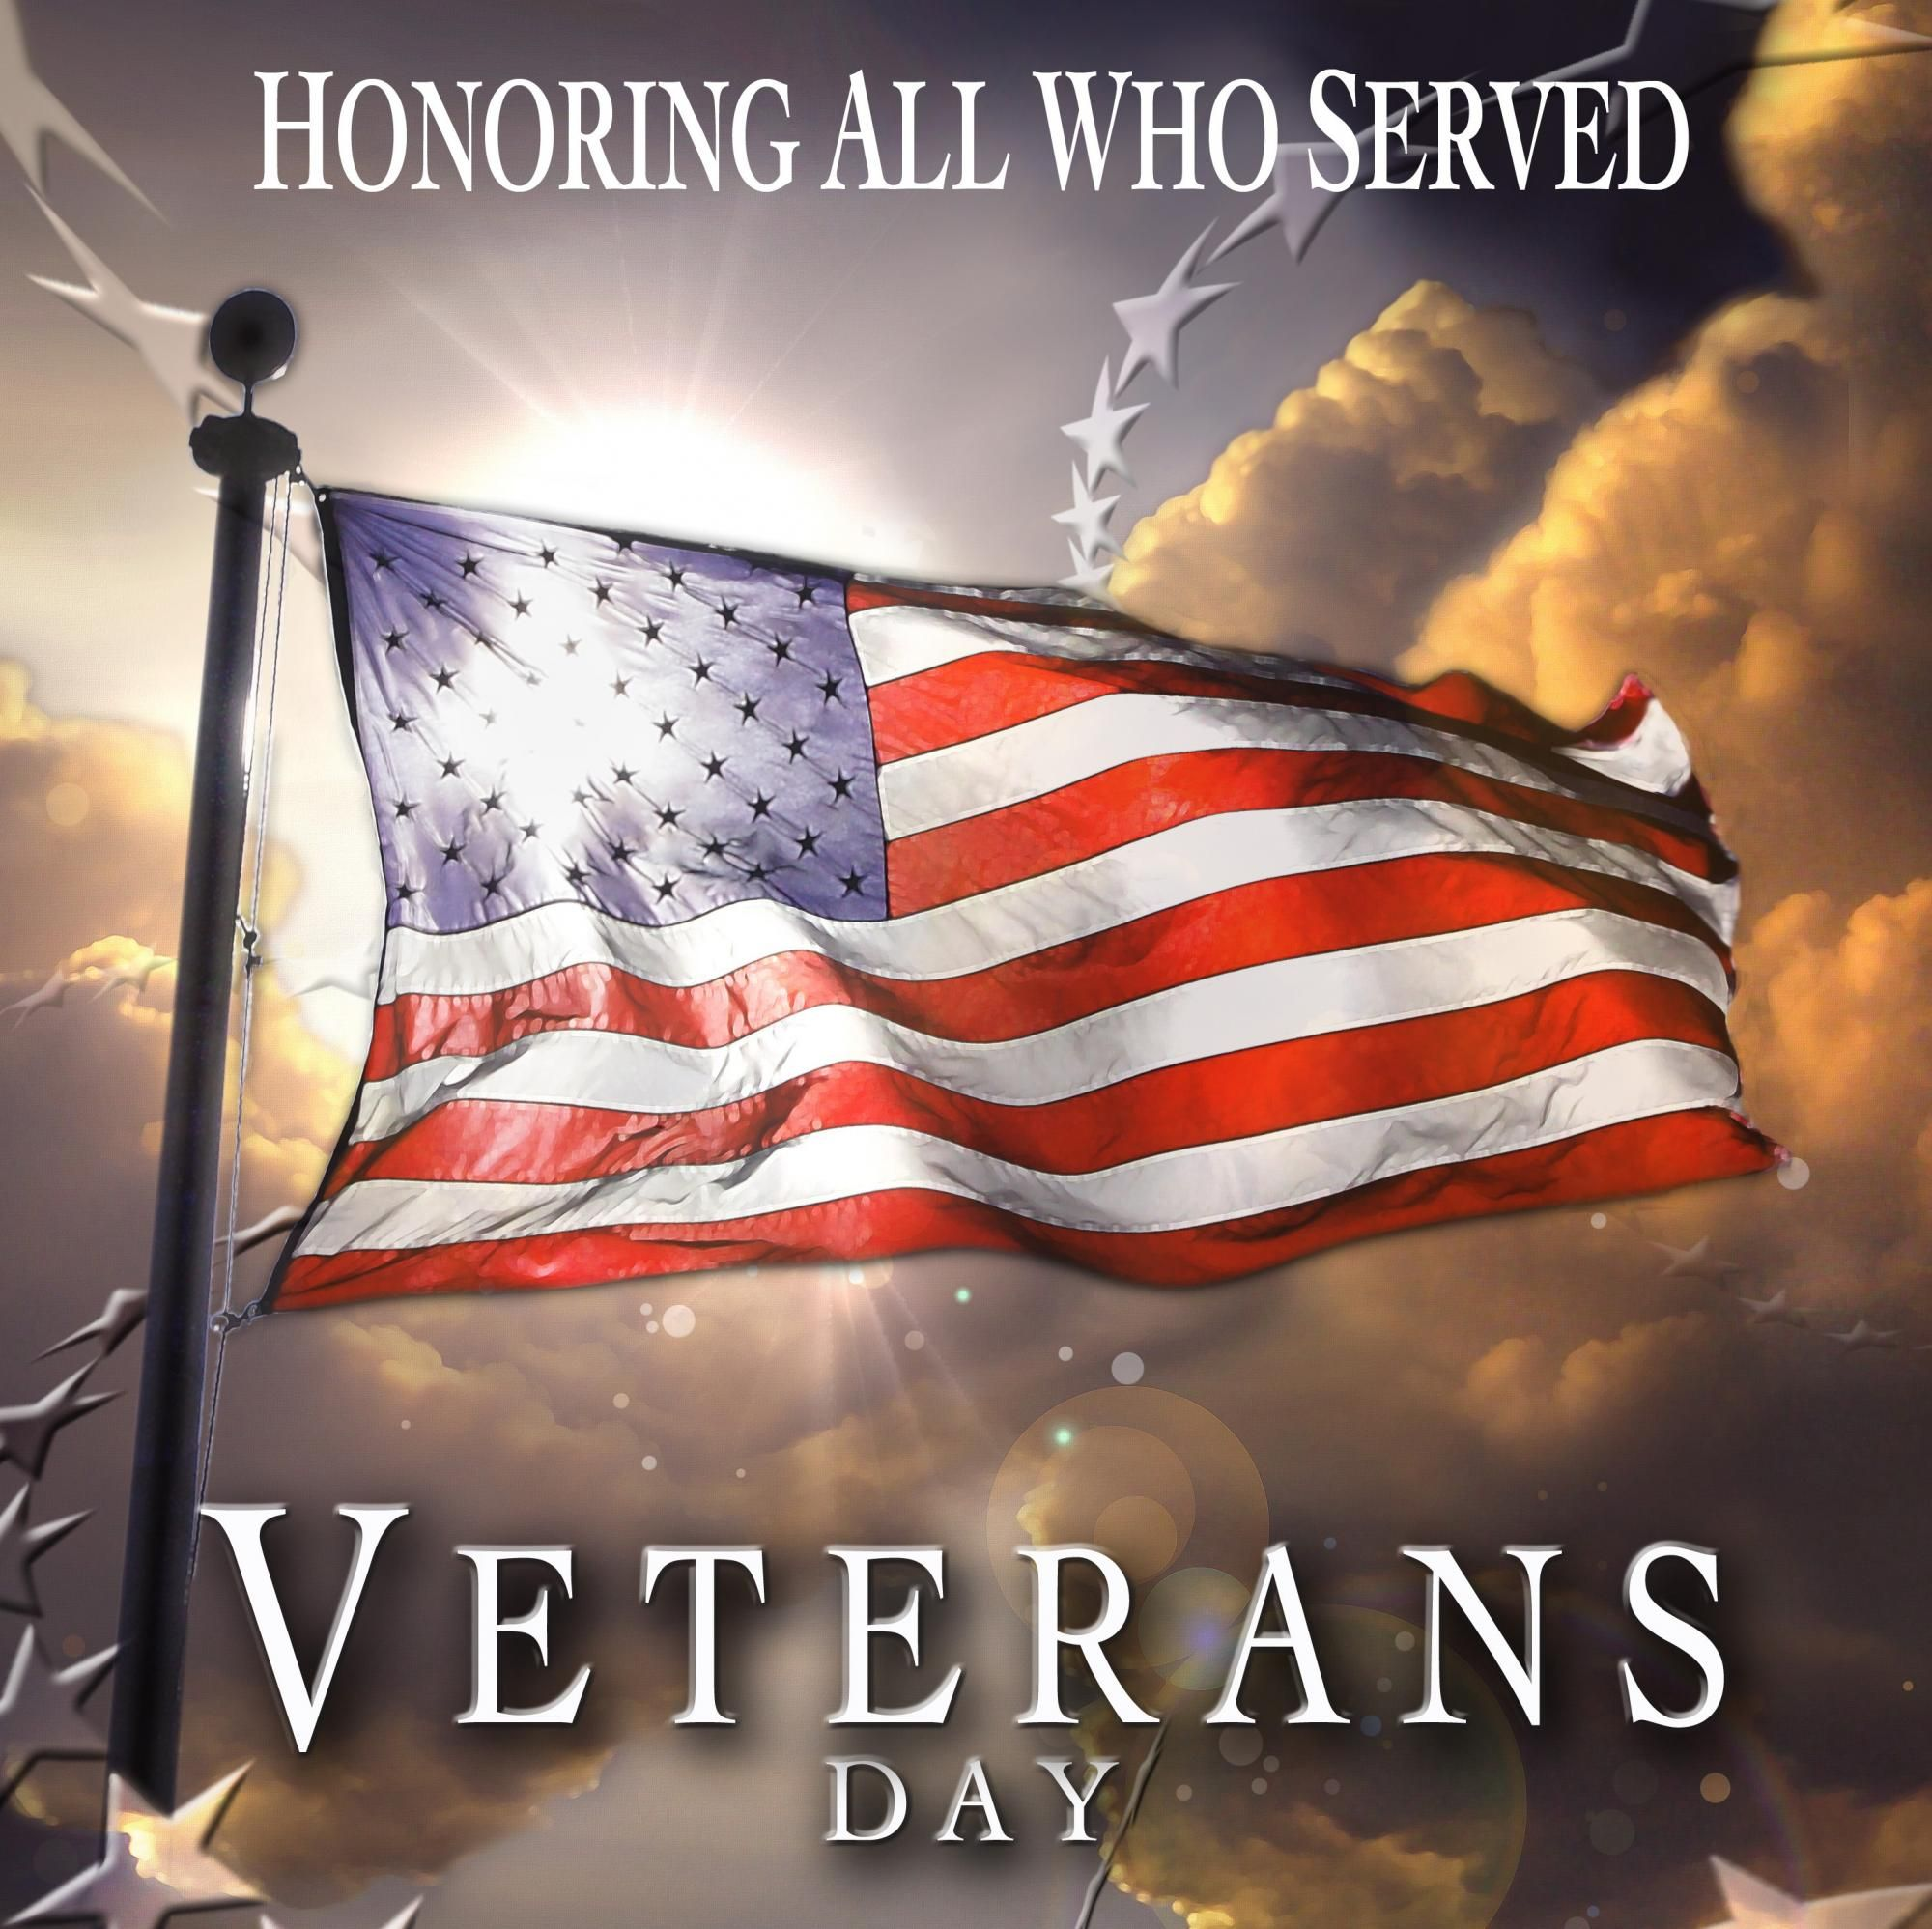 HD Veterans Day Wallpapers And Photos Holidays